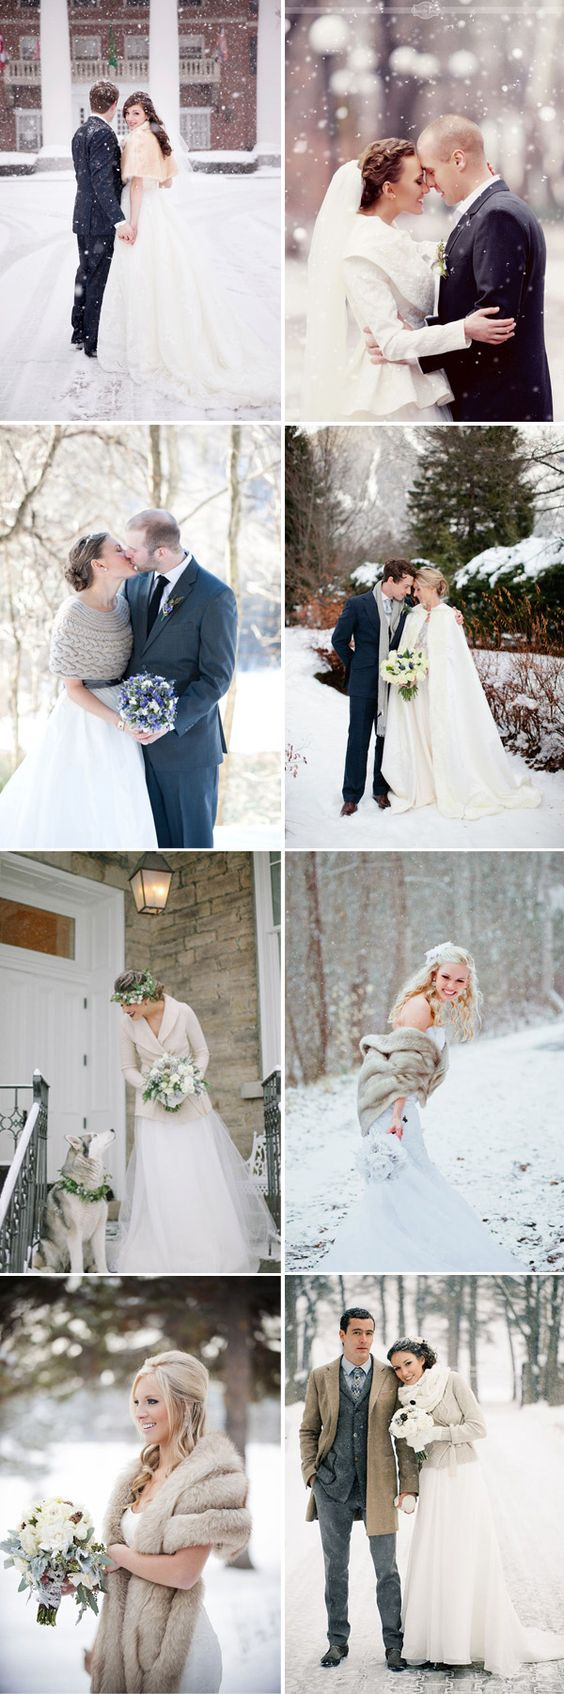 cozy and warm accessories for winter bridal wedding dress: